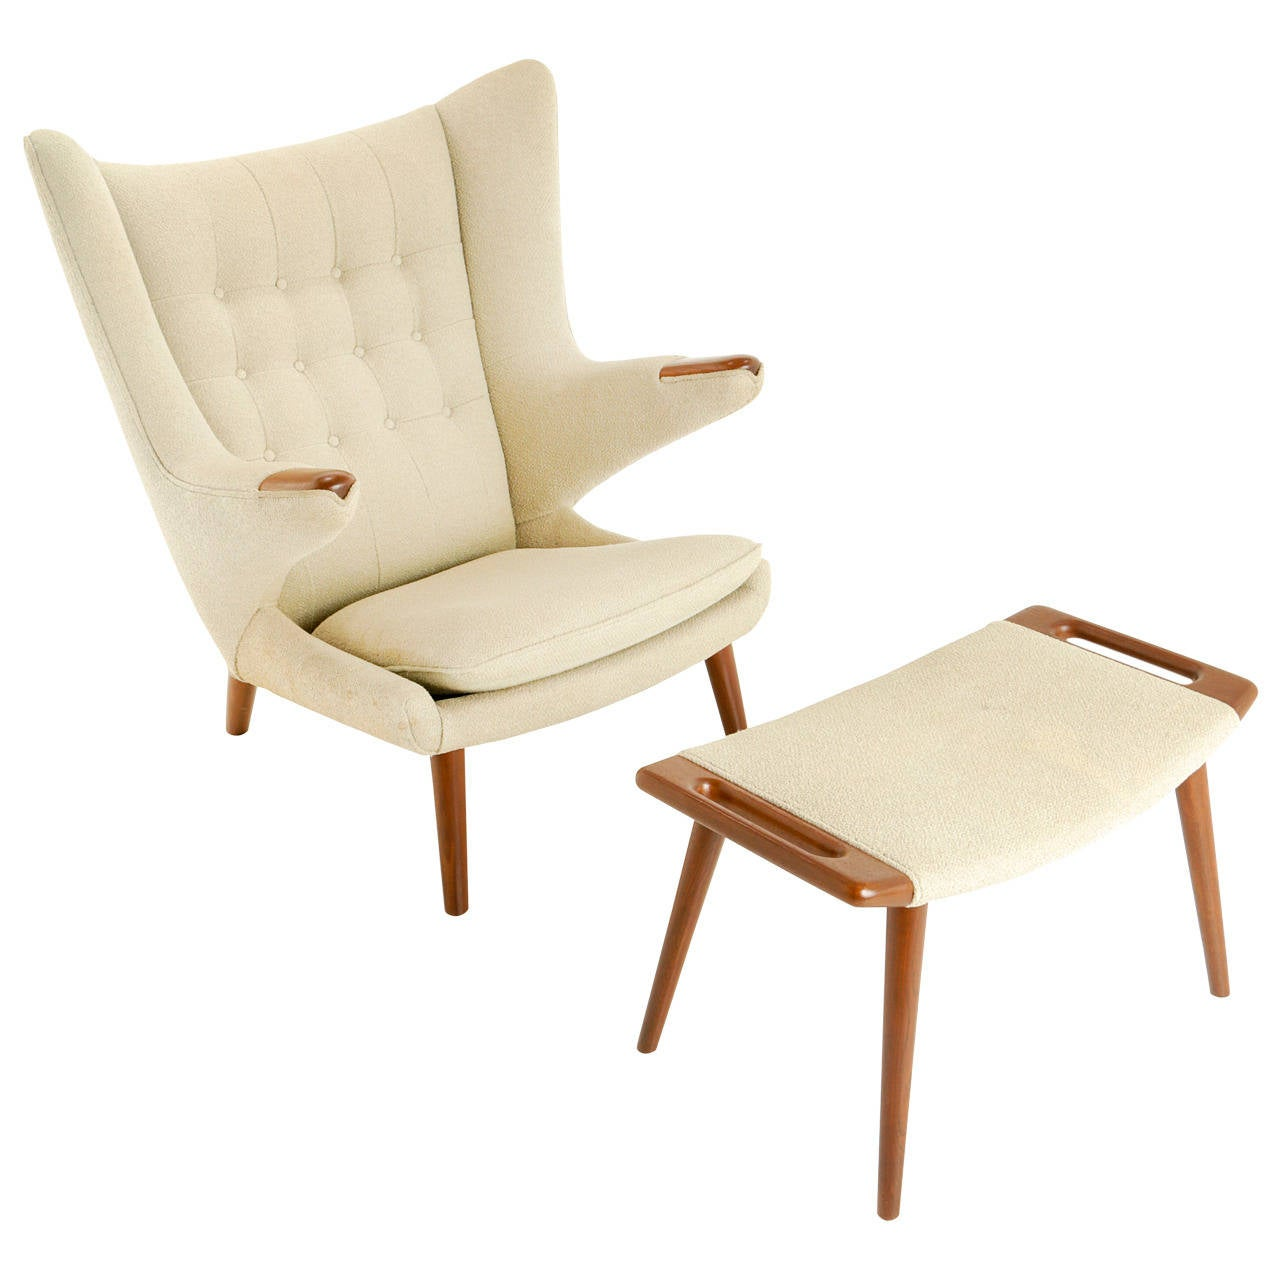 Hans Wegner Papa Bear Chair and Ottoman in Teak at 1stdibs